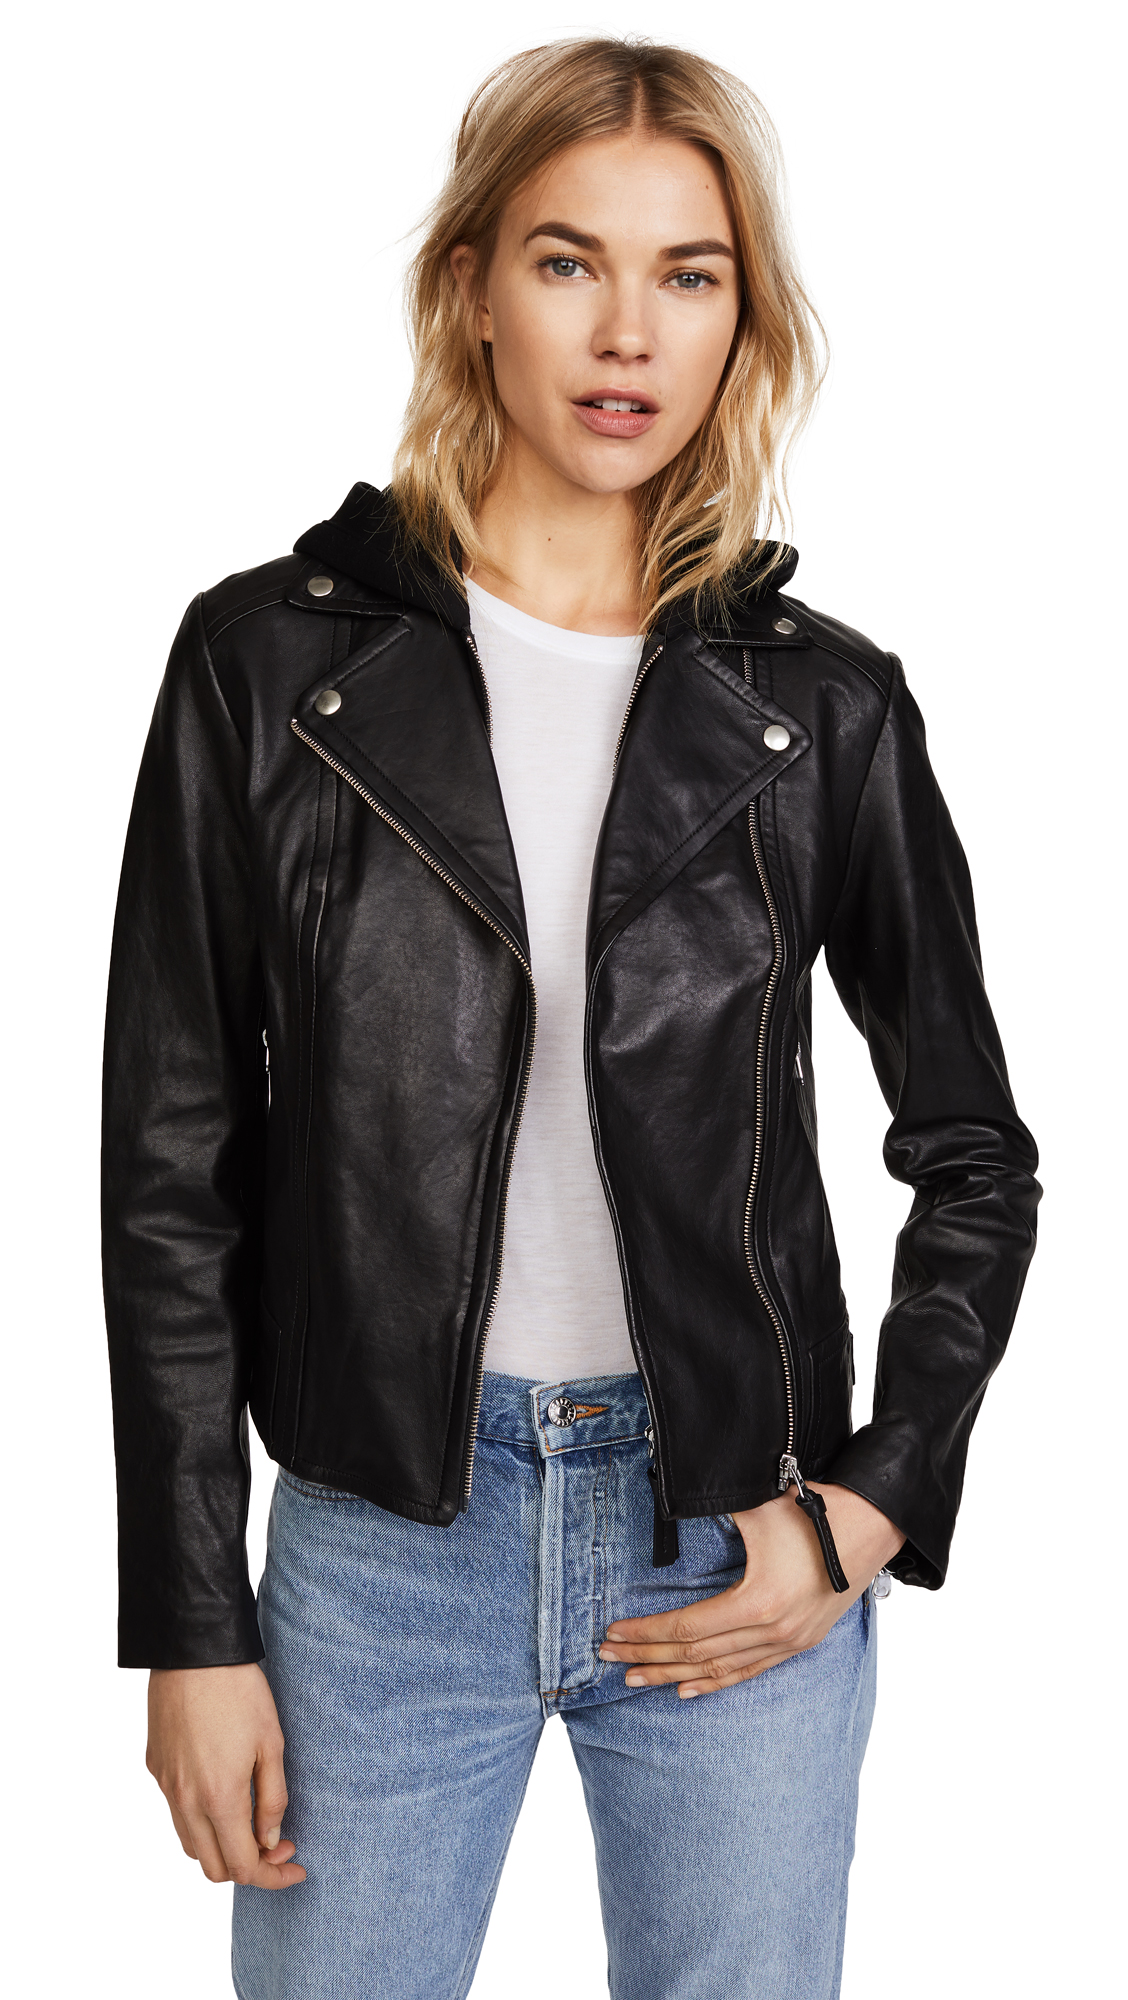 Mackage Yoana Leather Jacket - Black